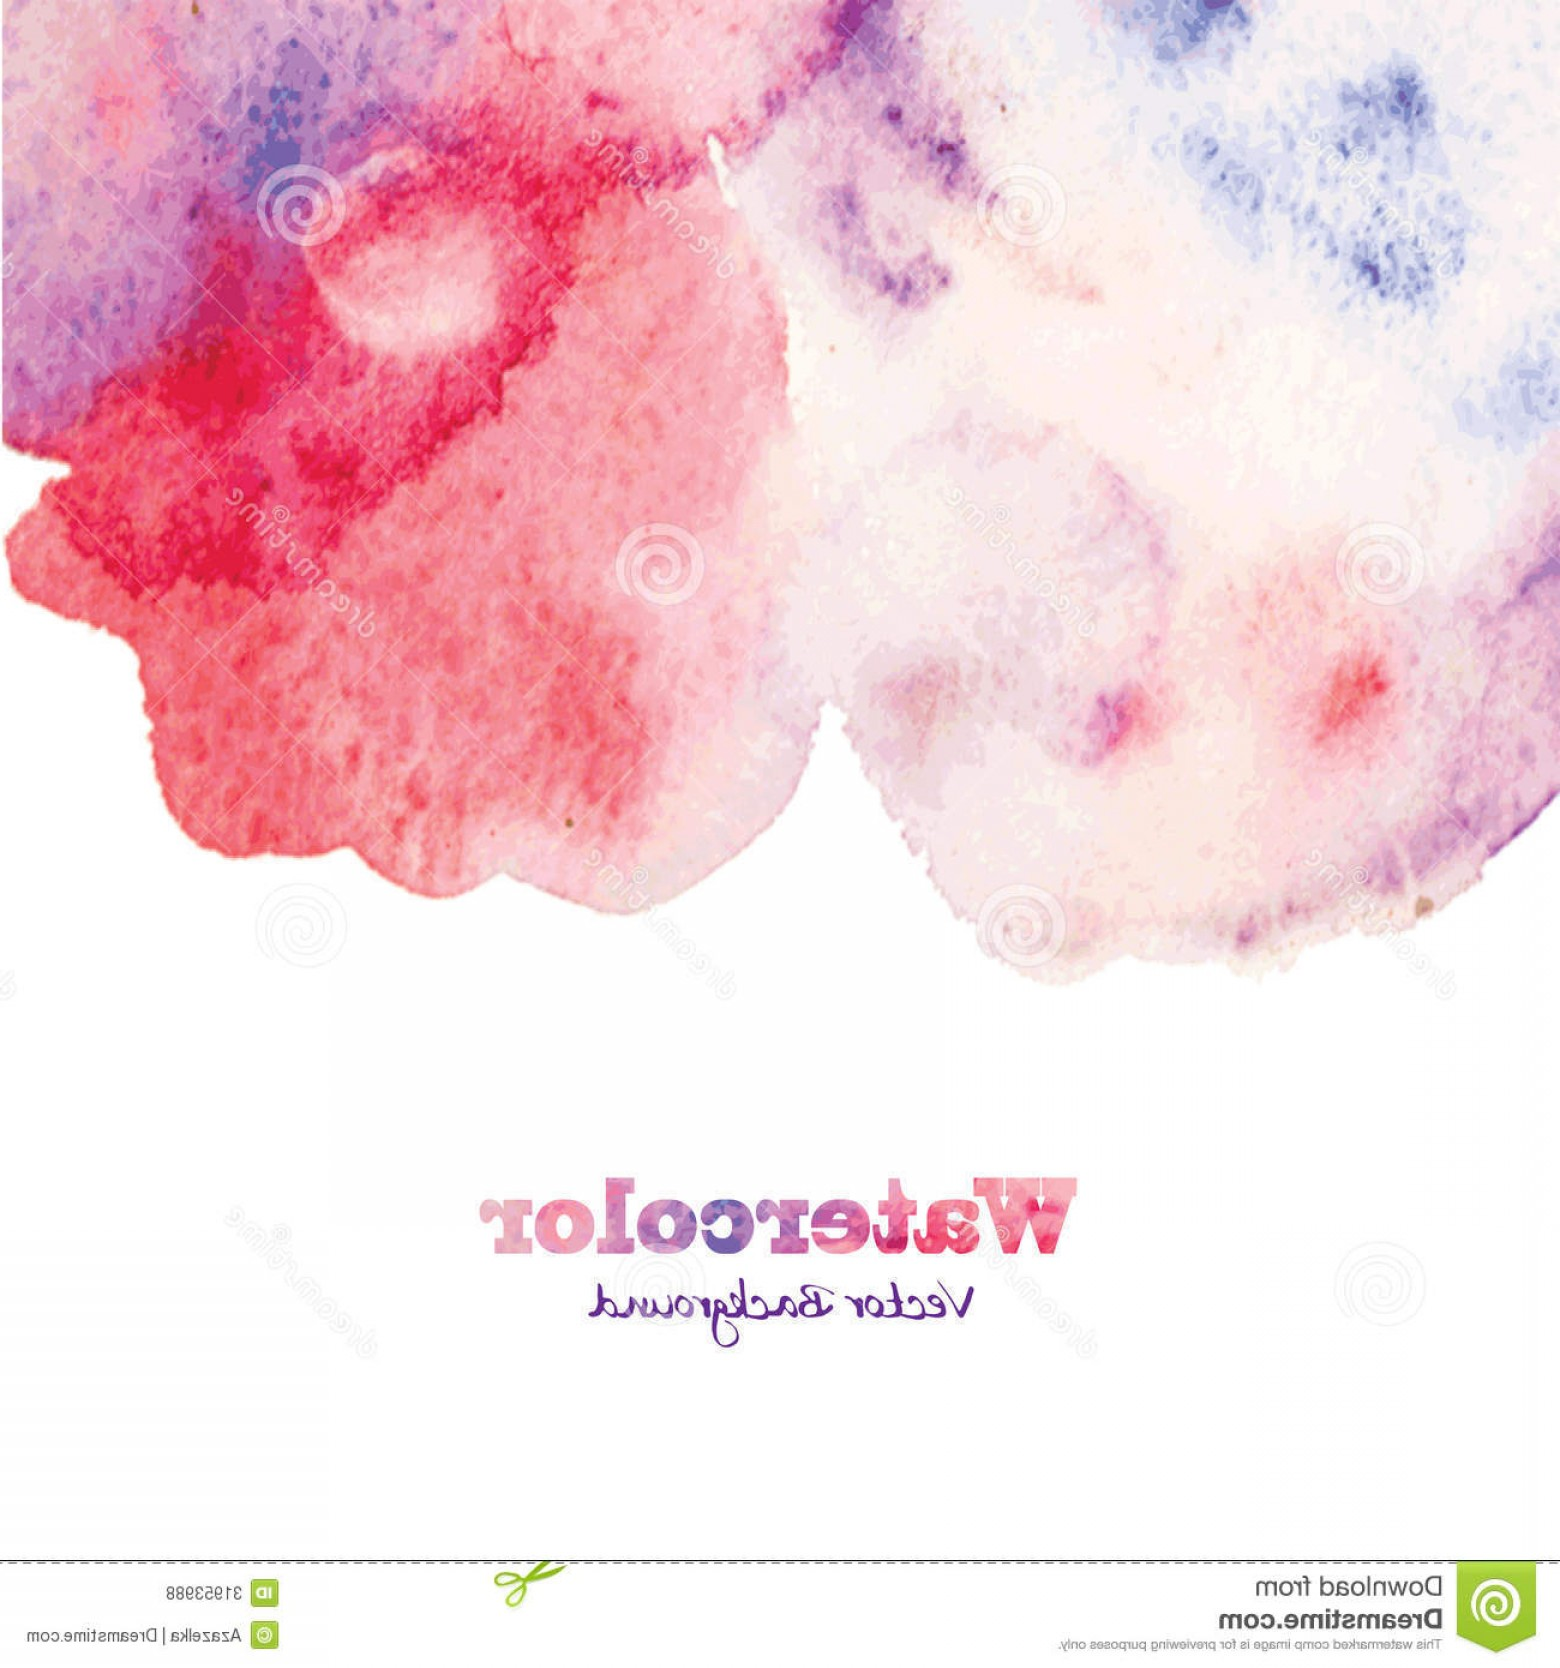 Watercolor Vector Background Free: Royalty Free Stock Photos Abstract Hand Painted Watercolor Background Vector Image